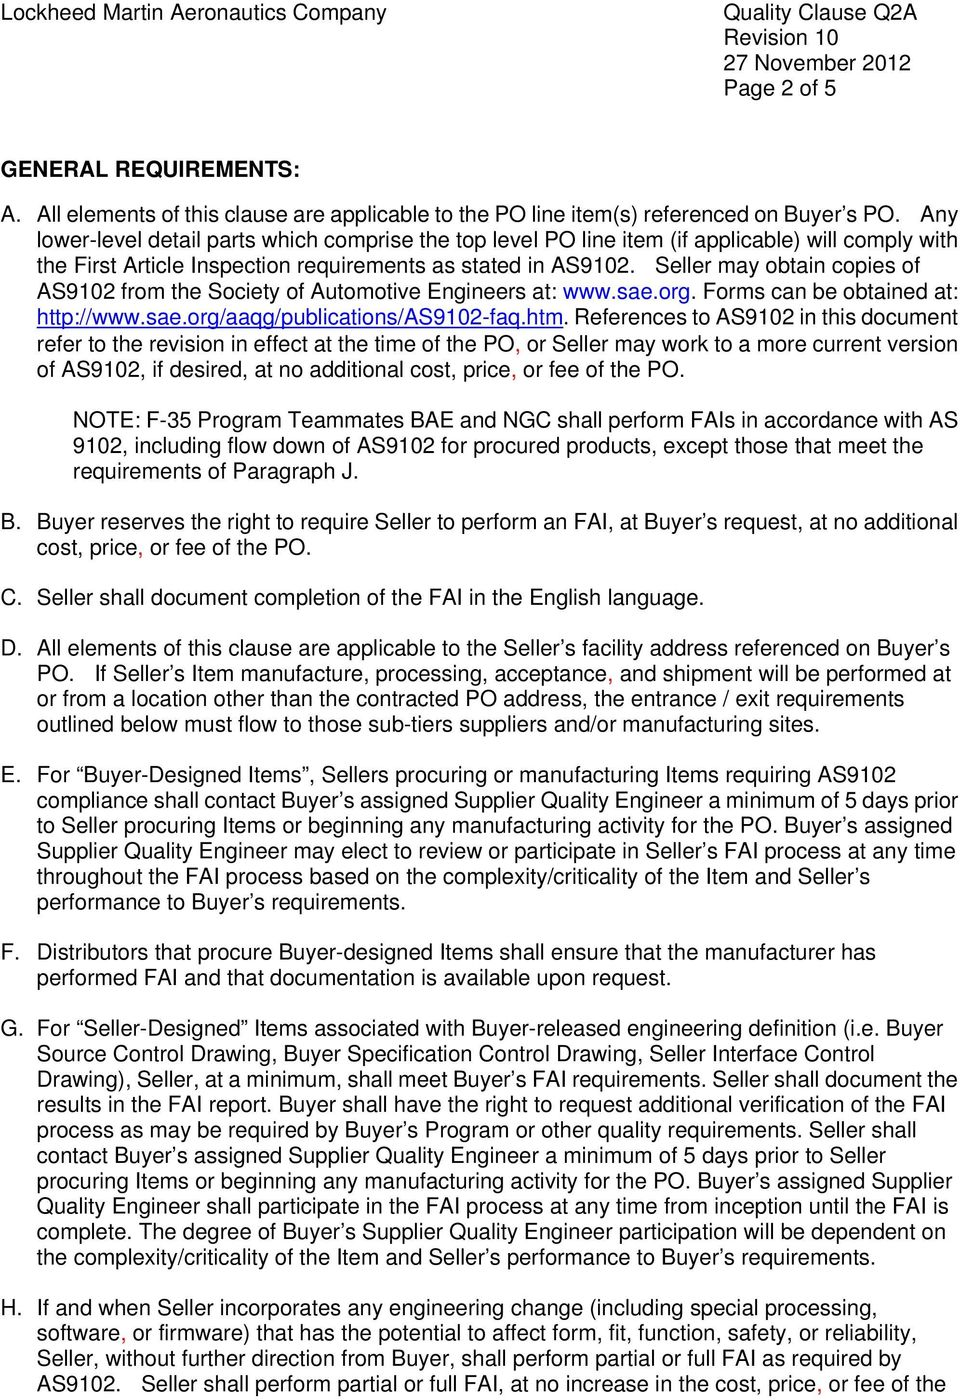 Q2a First Article Inspection Fai As9102 Revised Added